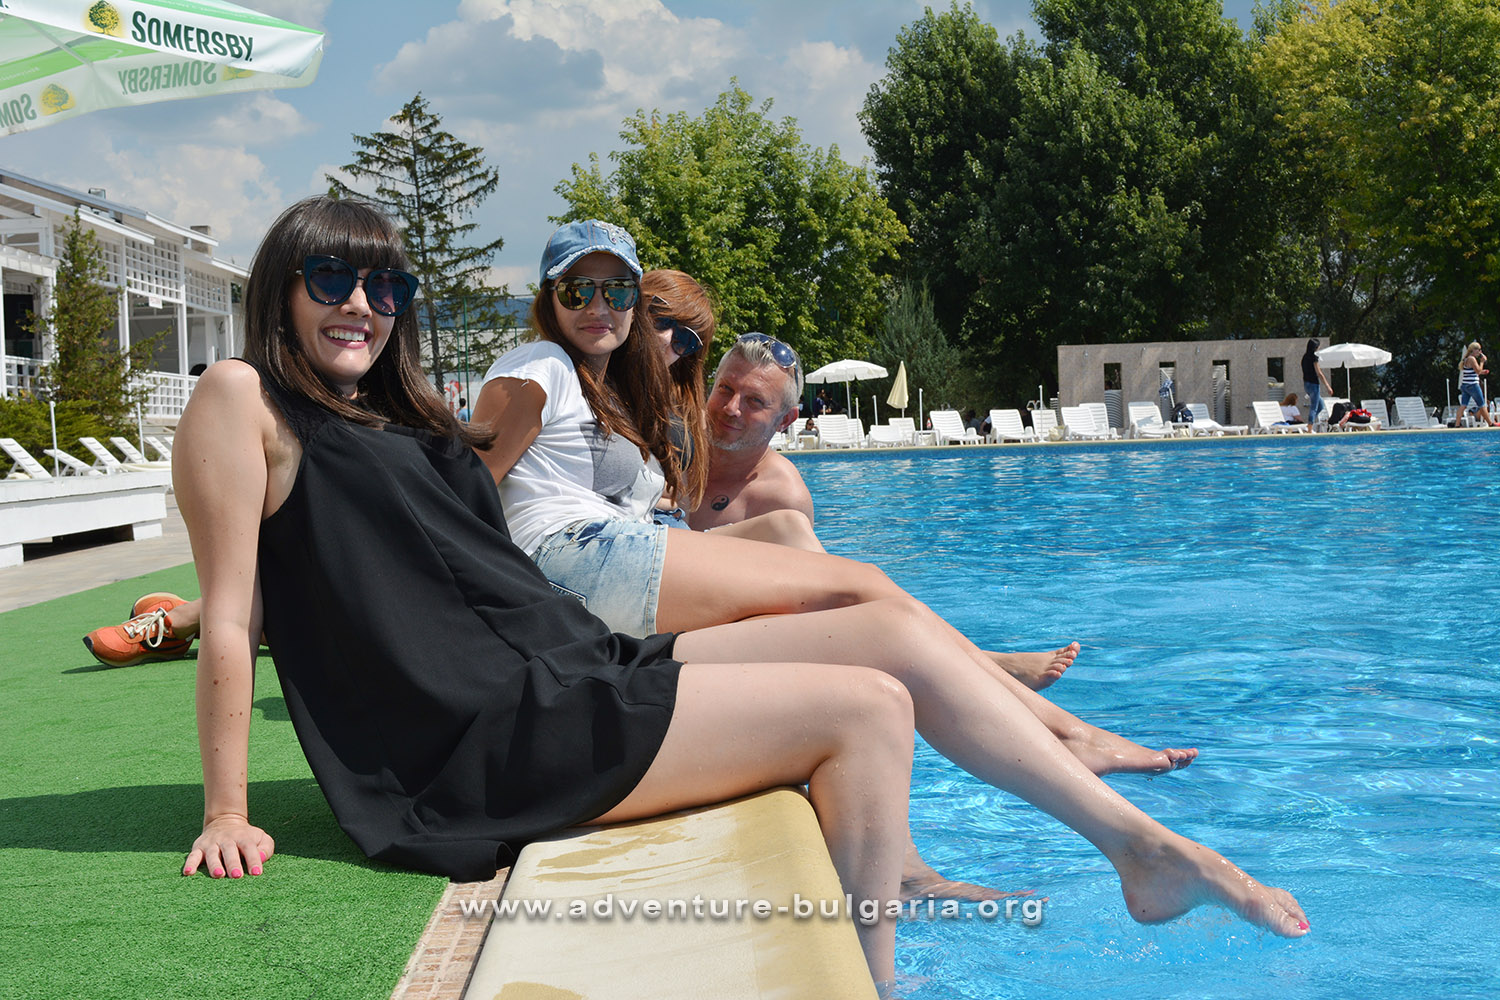 Holidays around the pool - team building in Bulgaria